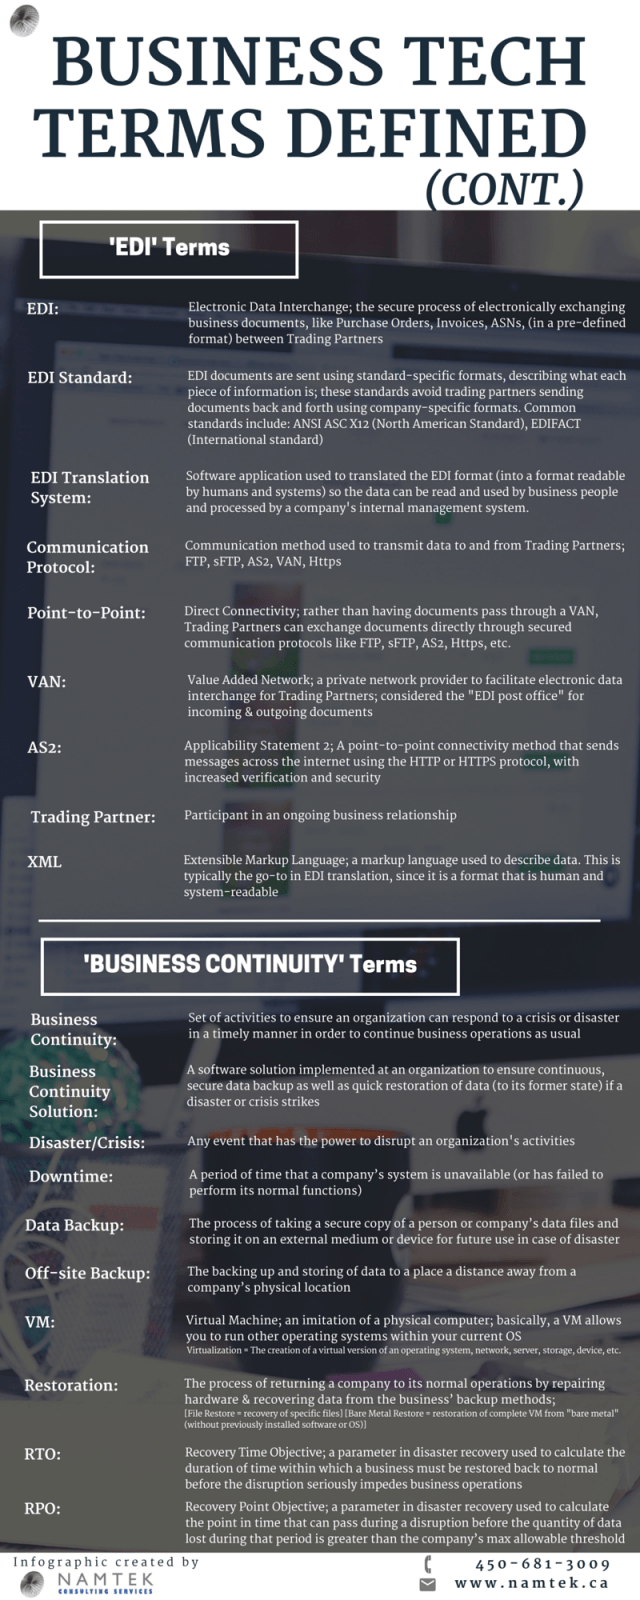 Business Tech Terms_2